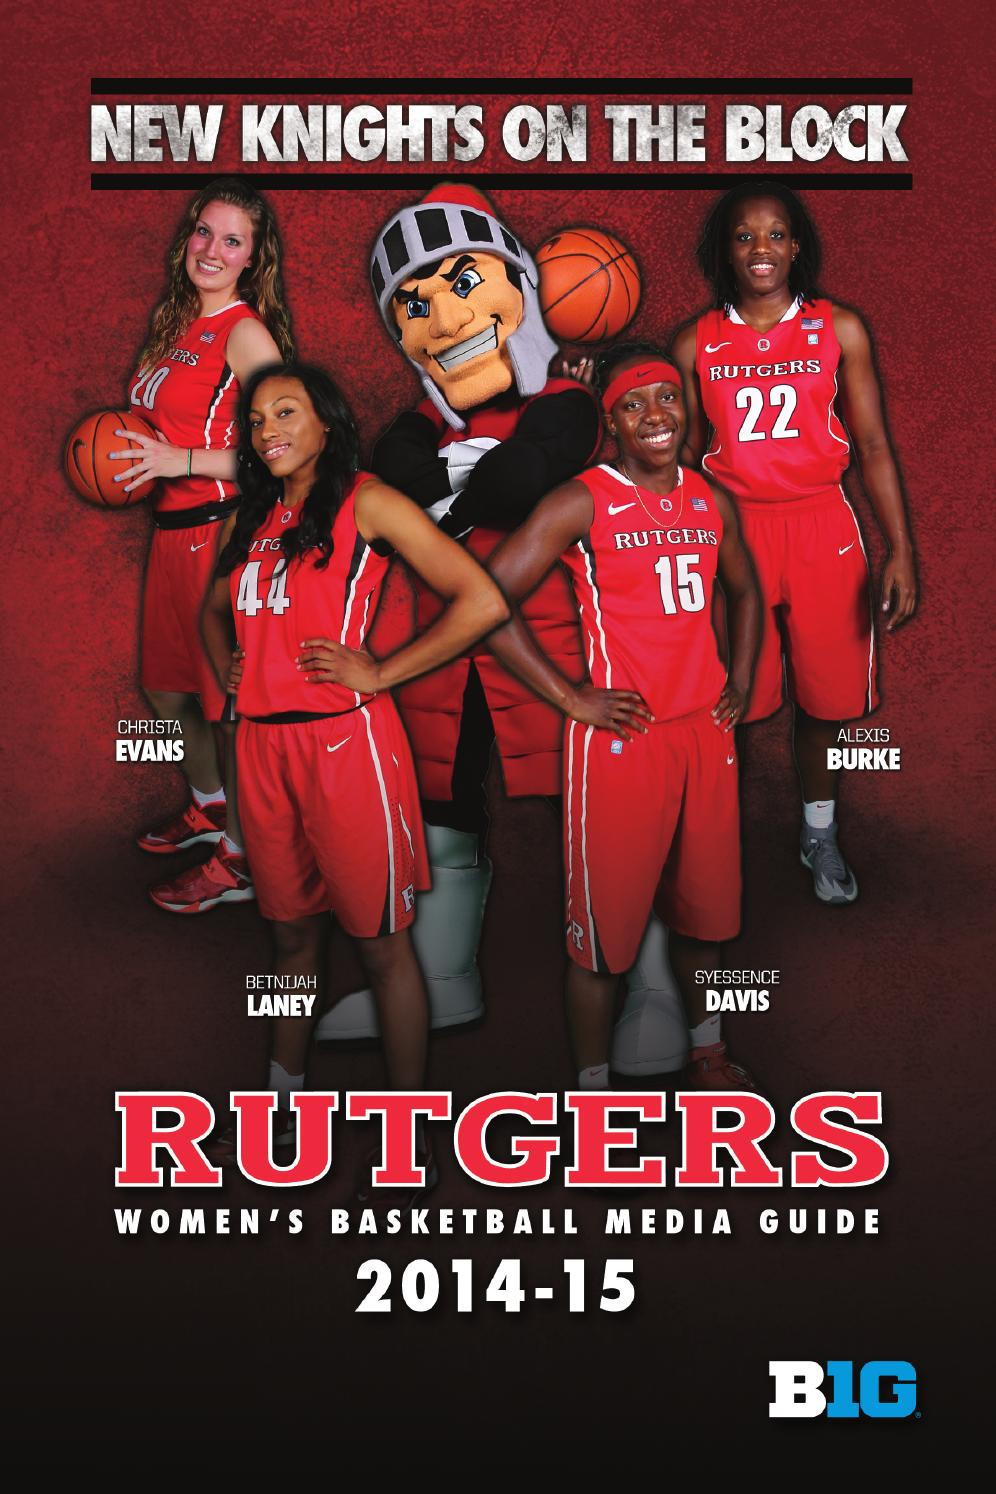 2014 15 rutgerswbb guide by Rutgers Athletics - issuu 1ffd26264ed6